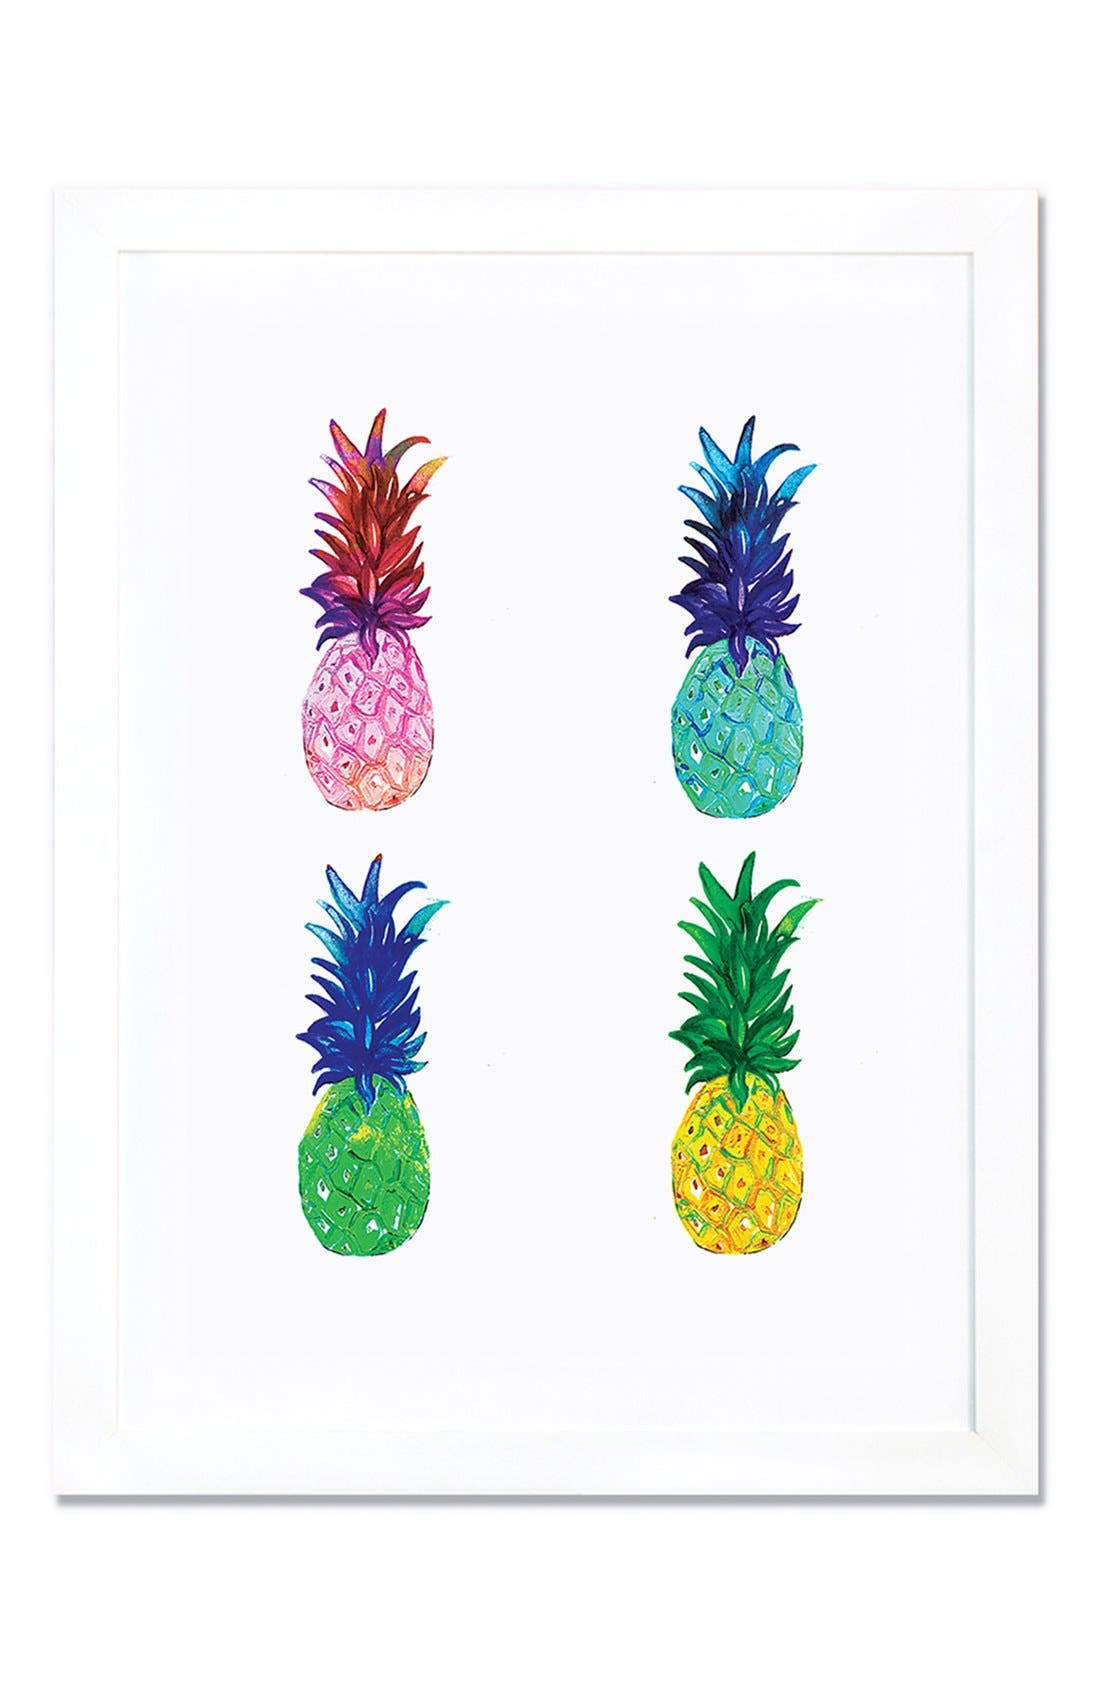 'Pineapple' Giclée Print Framed Canvas Art,                         Main,                         color, White